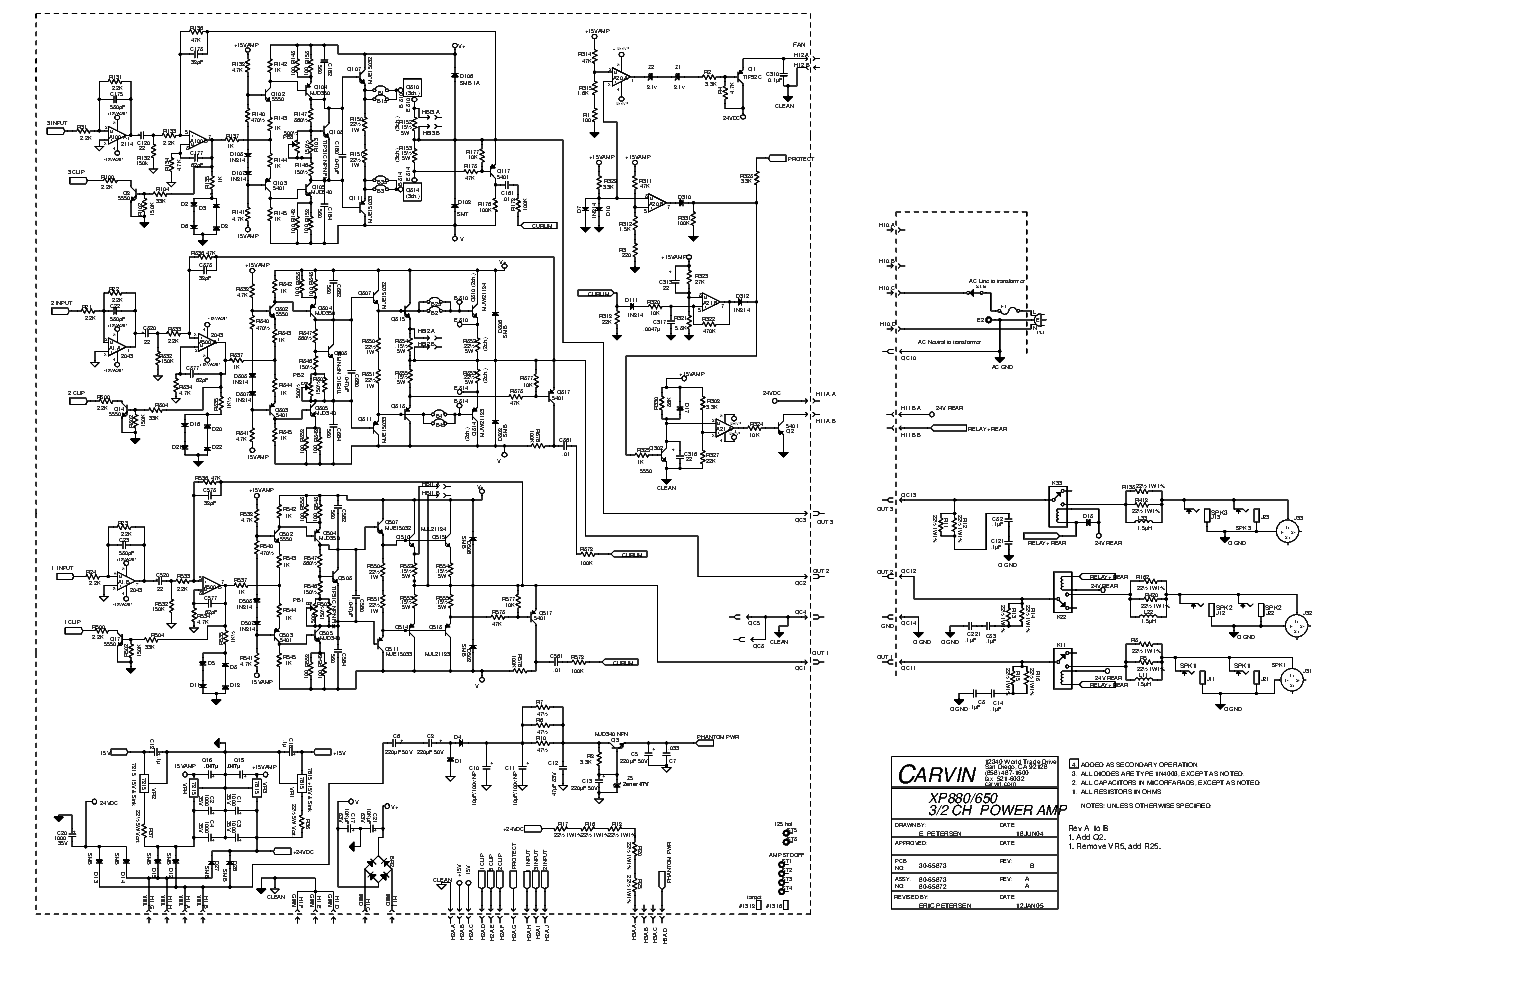 hight resolution of carvin vintage 16 schematic wiring diagramcarvin legacy schematic wiring diagram